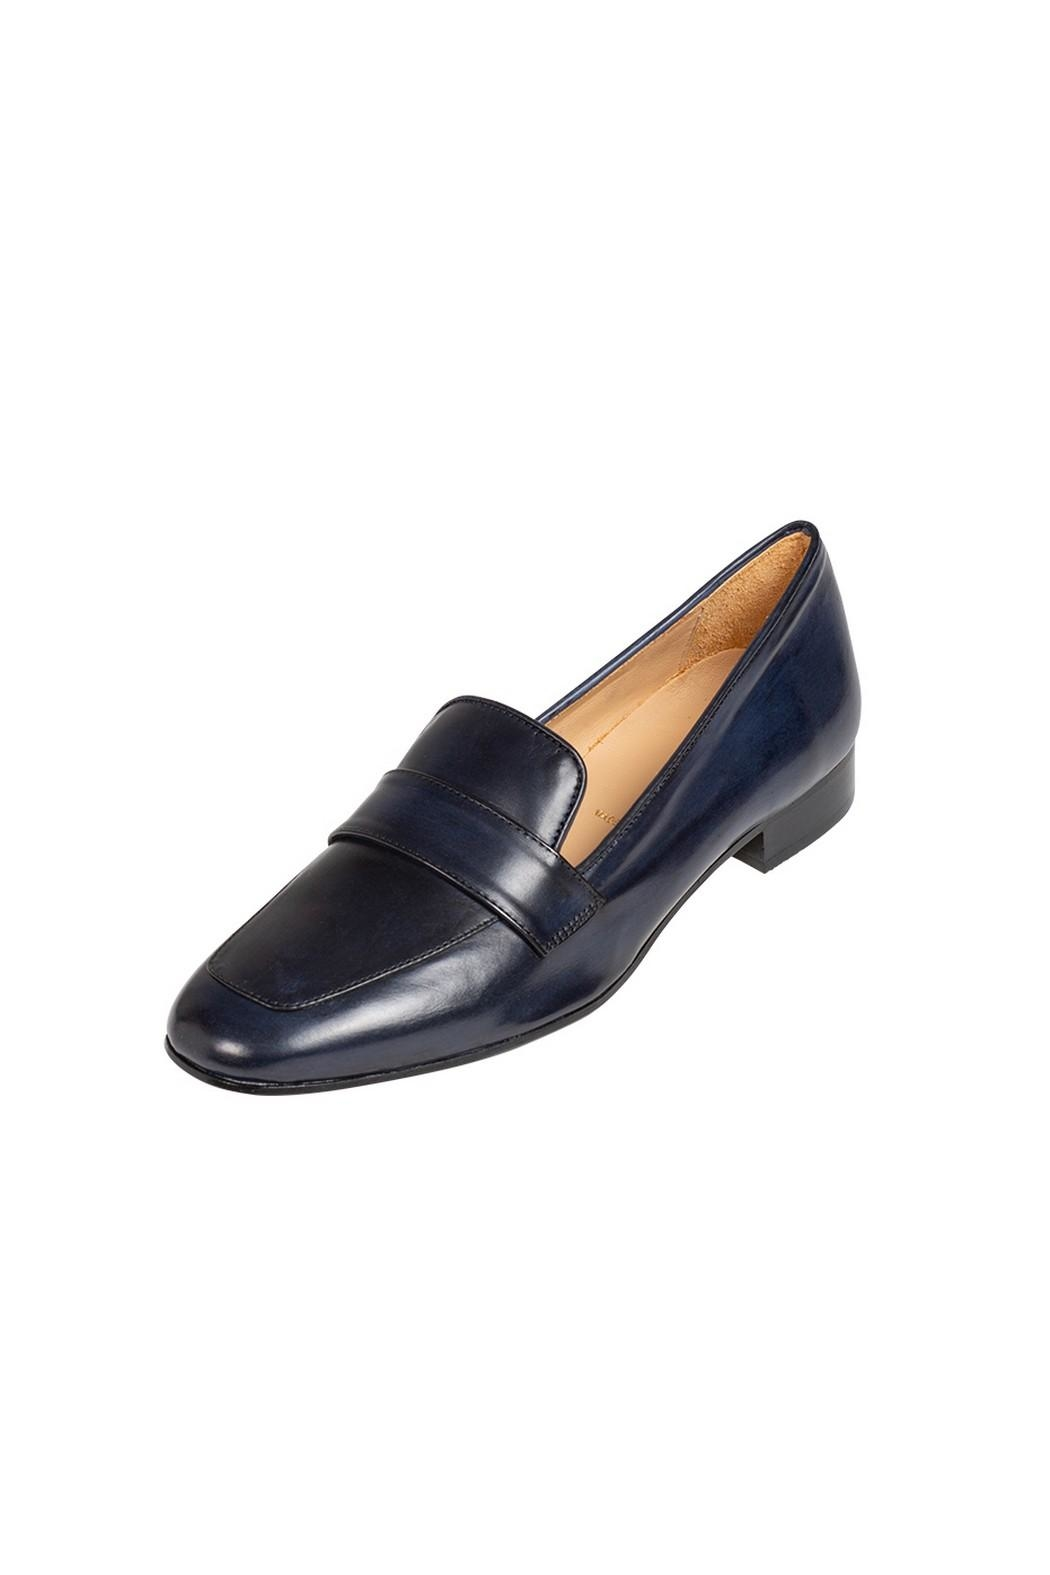 Pascucci Navy Leather Loafers - Front Full Image